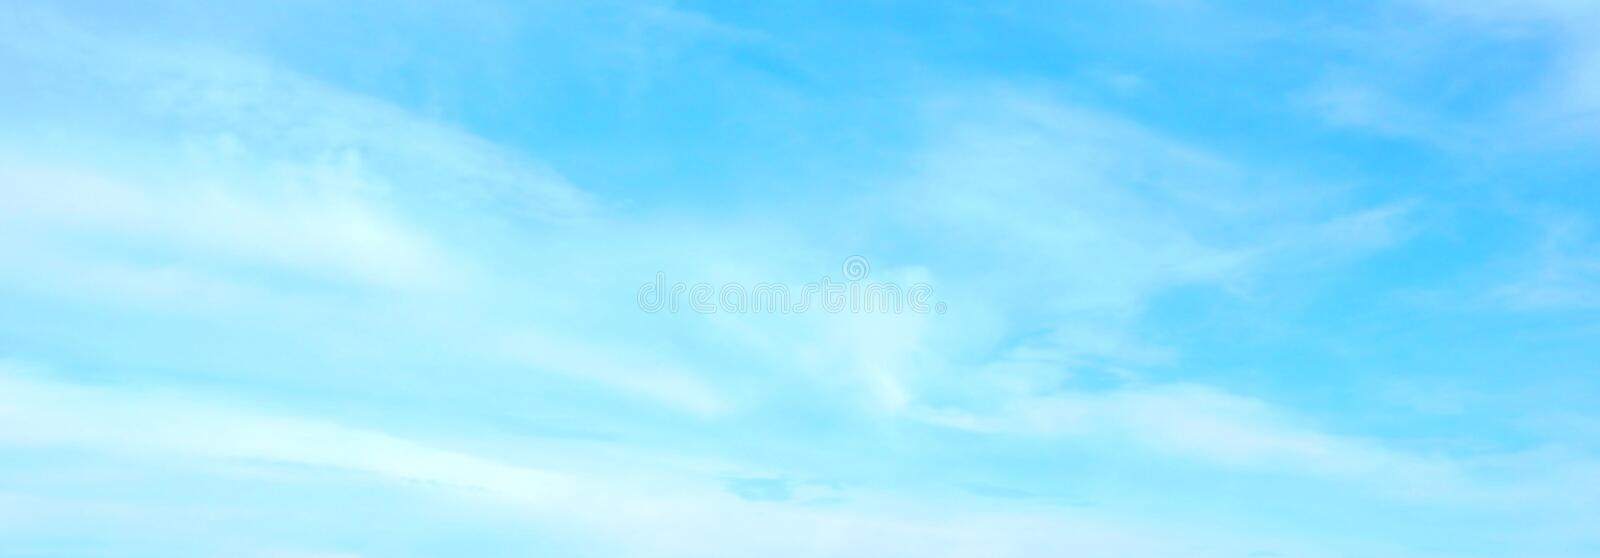 Beautiful blue sky with white fluffy clouds background. Turquoise color blured photography royalty free stock images